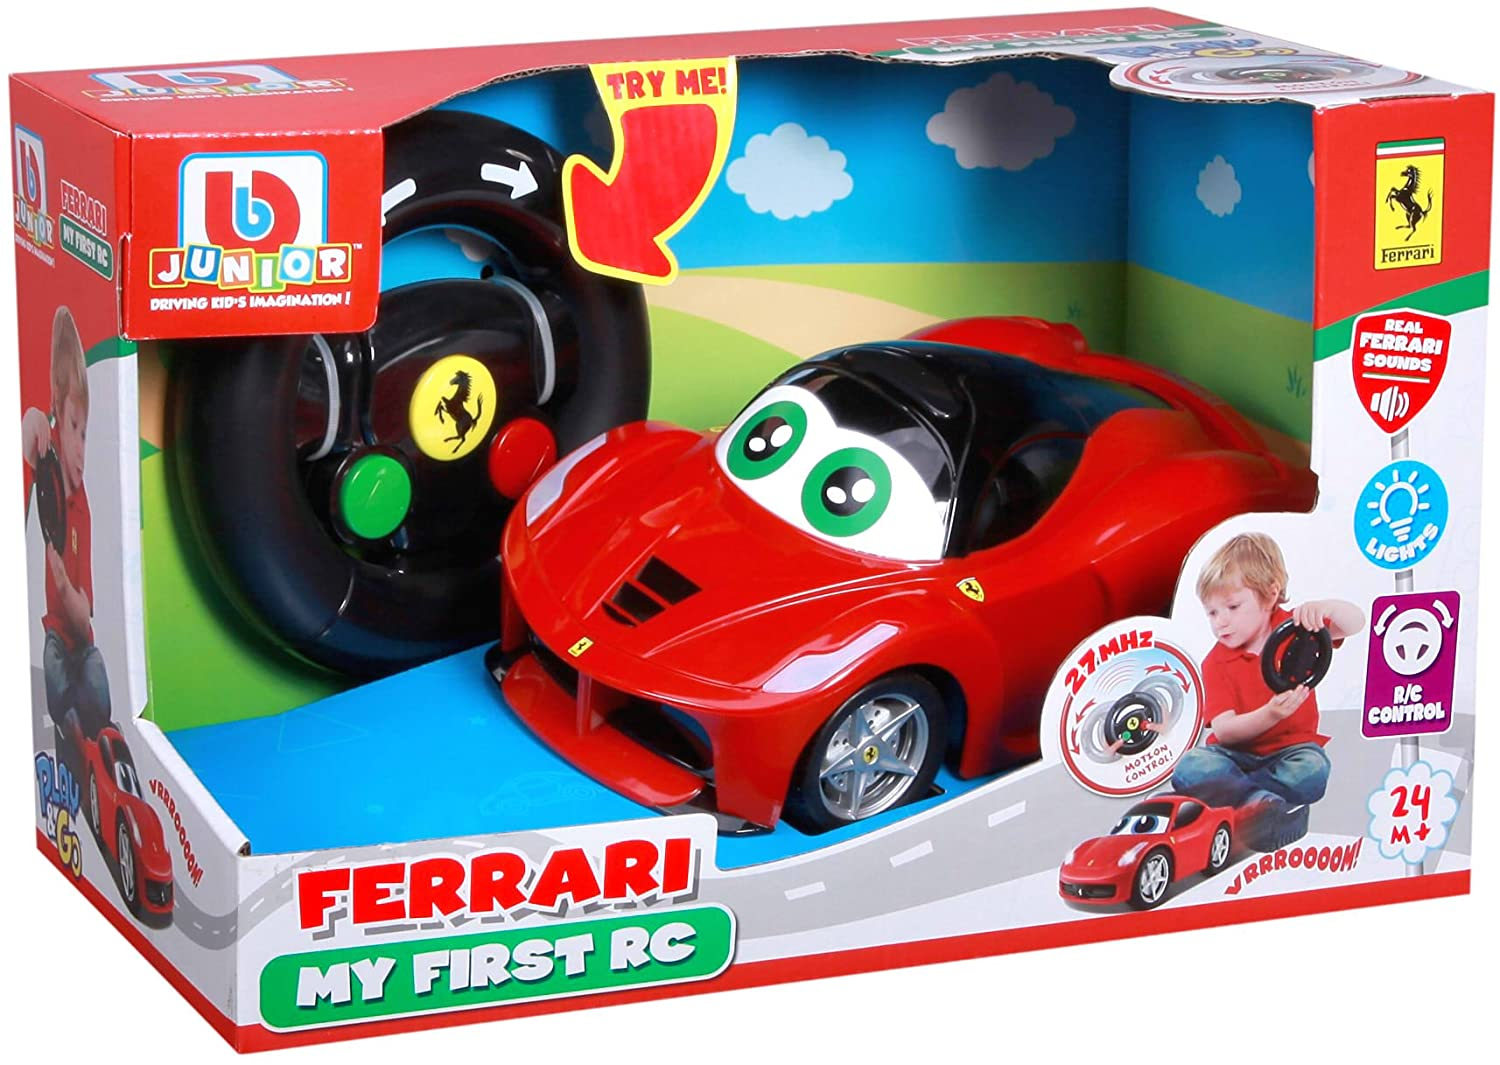 BB Junior Play & Go Ferrari My First R/C Laferrari Vehicle